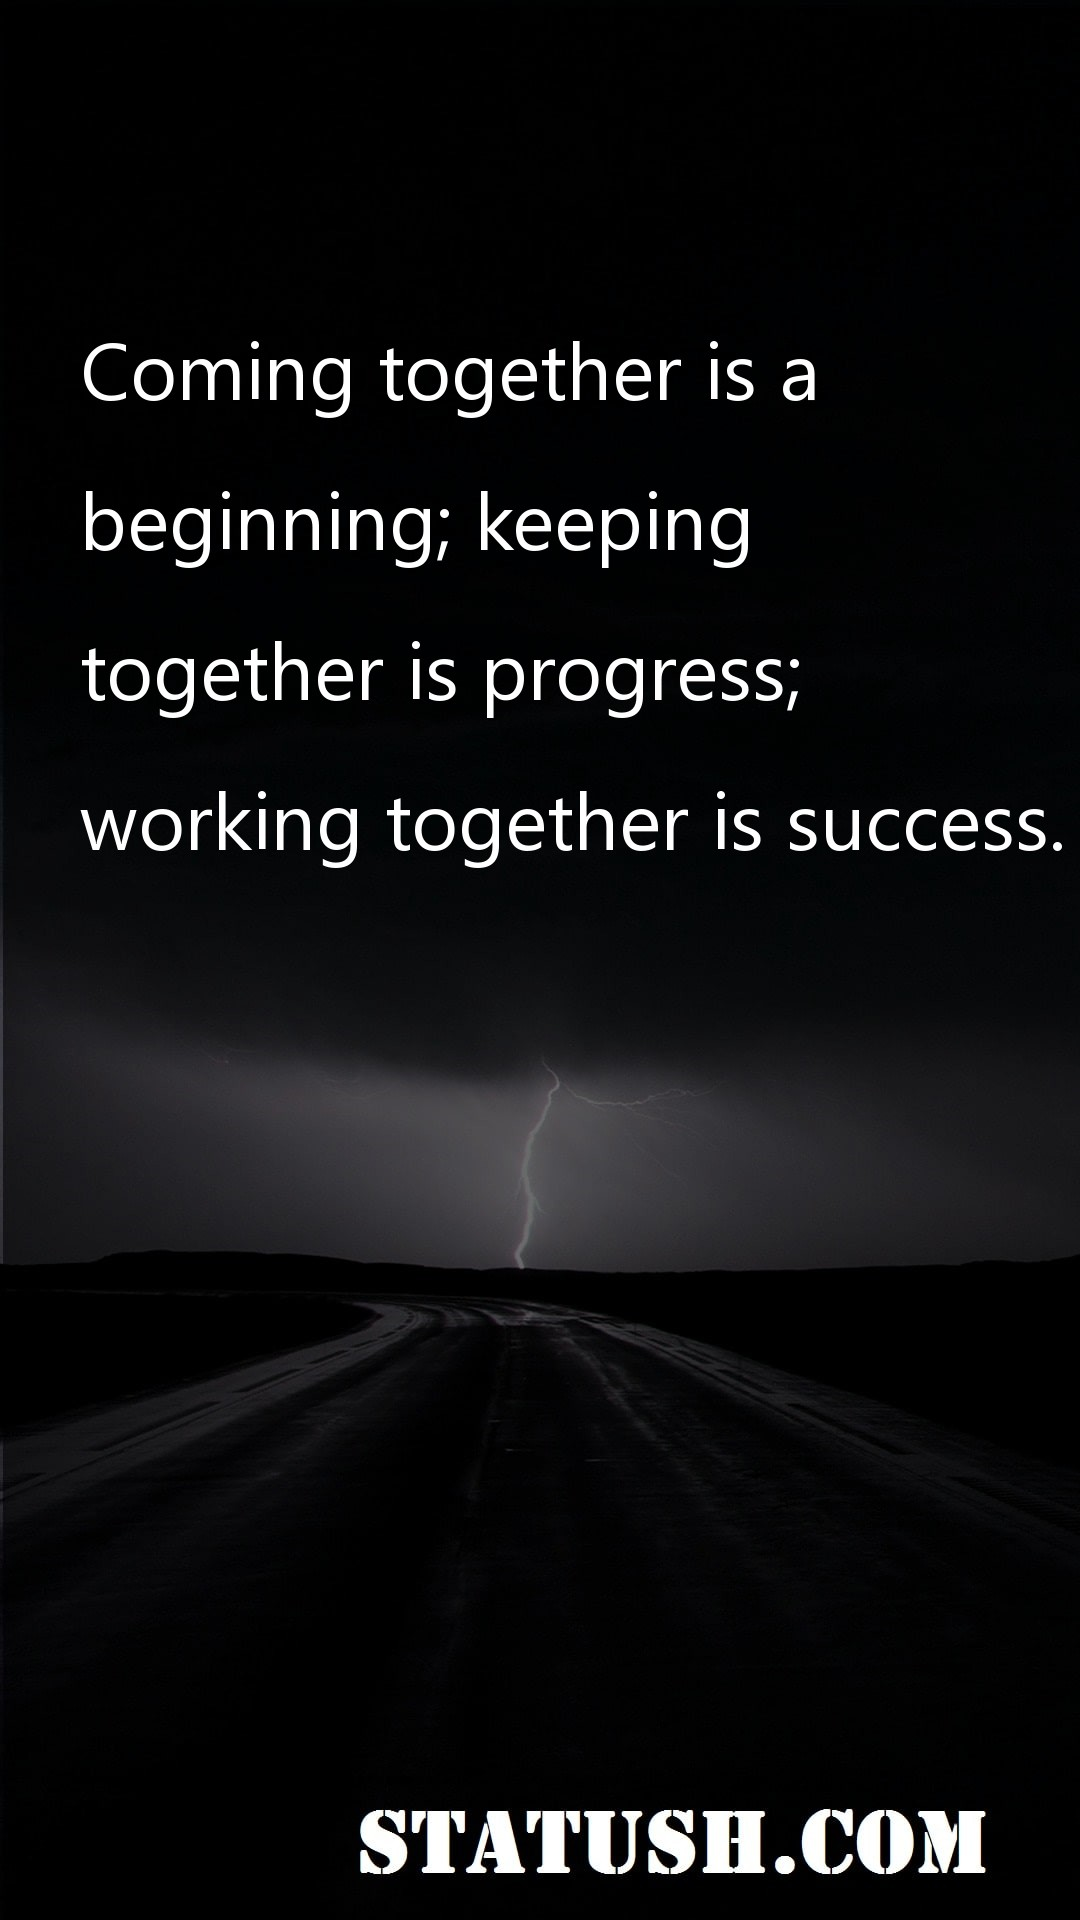 Coming together is a